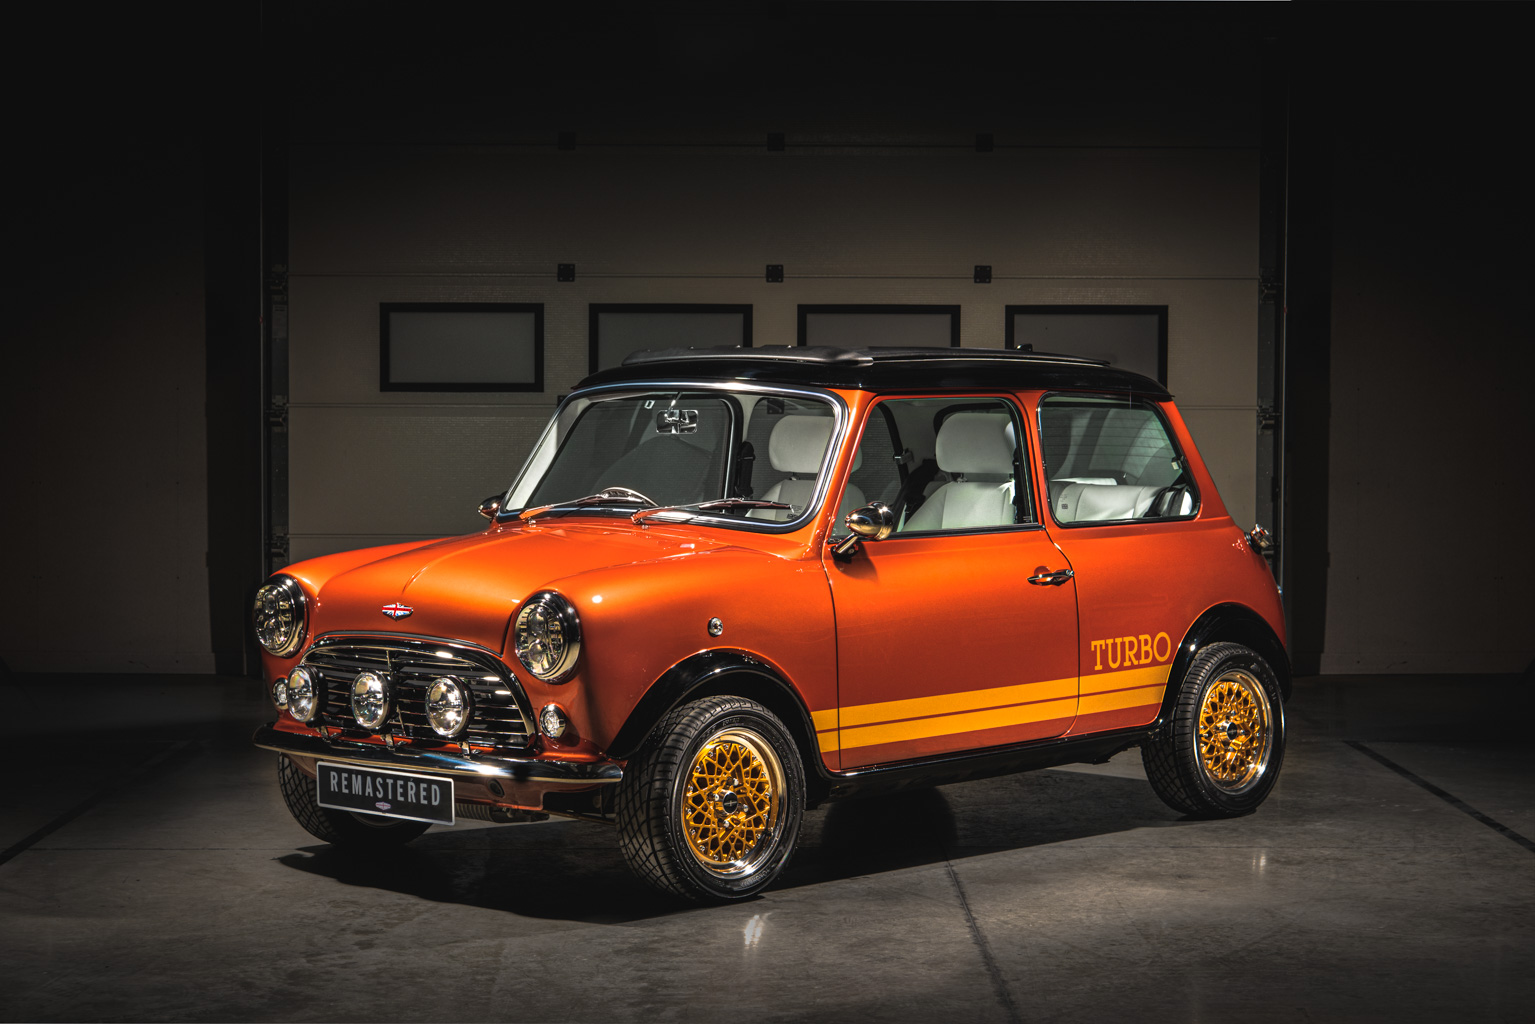 David Brown's 007 inspired Mini Remastered